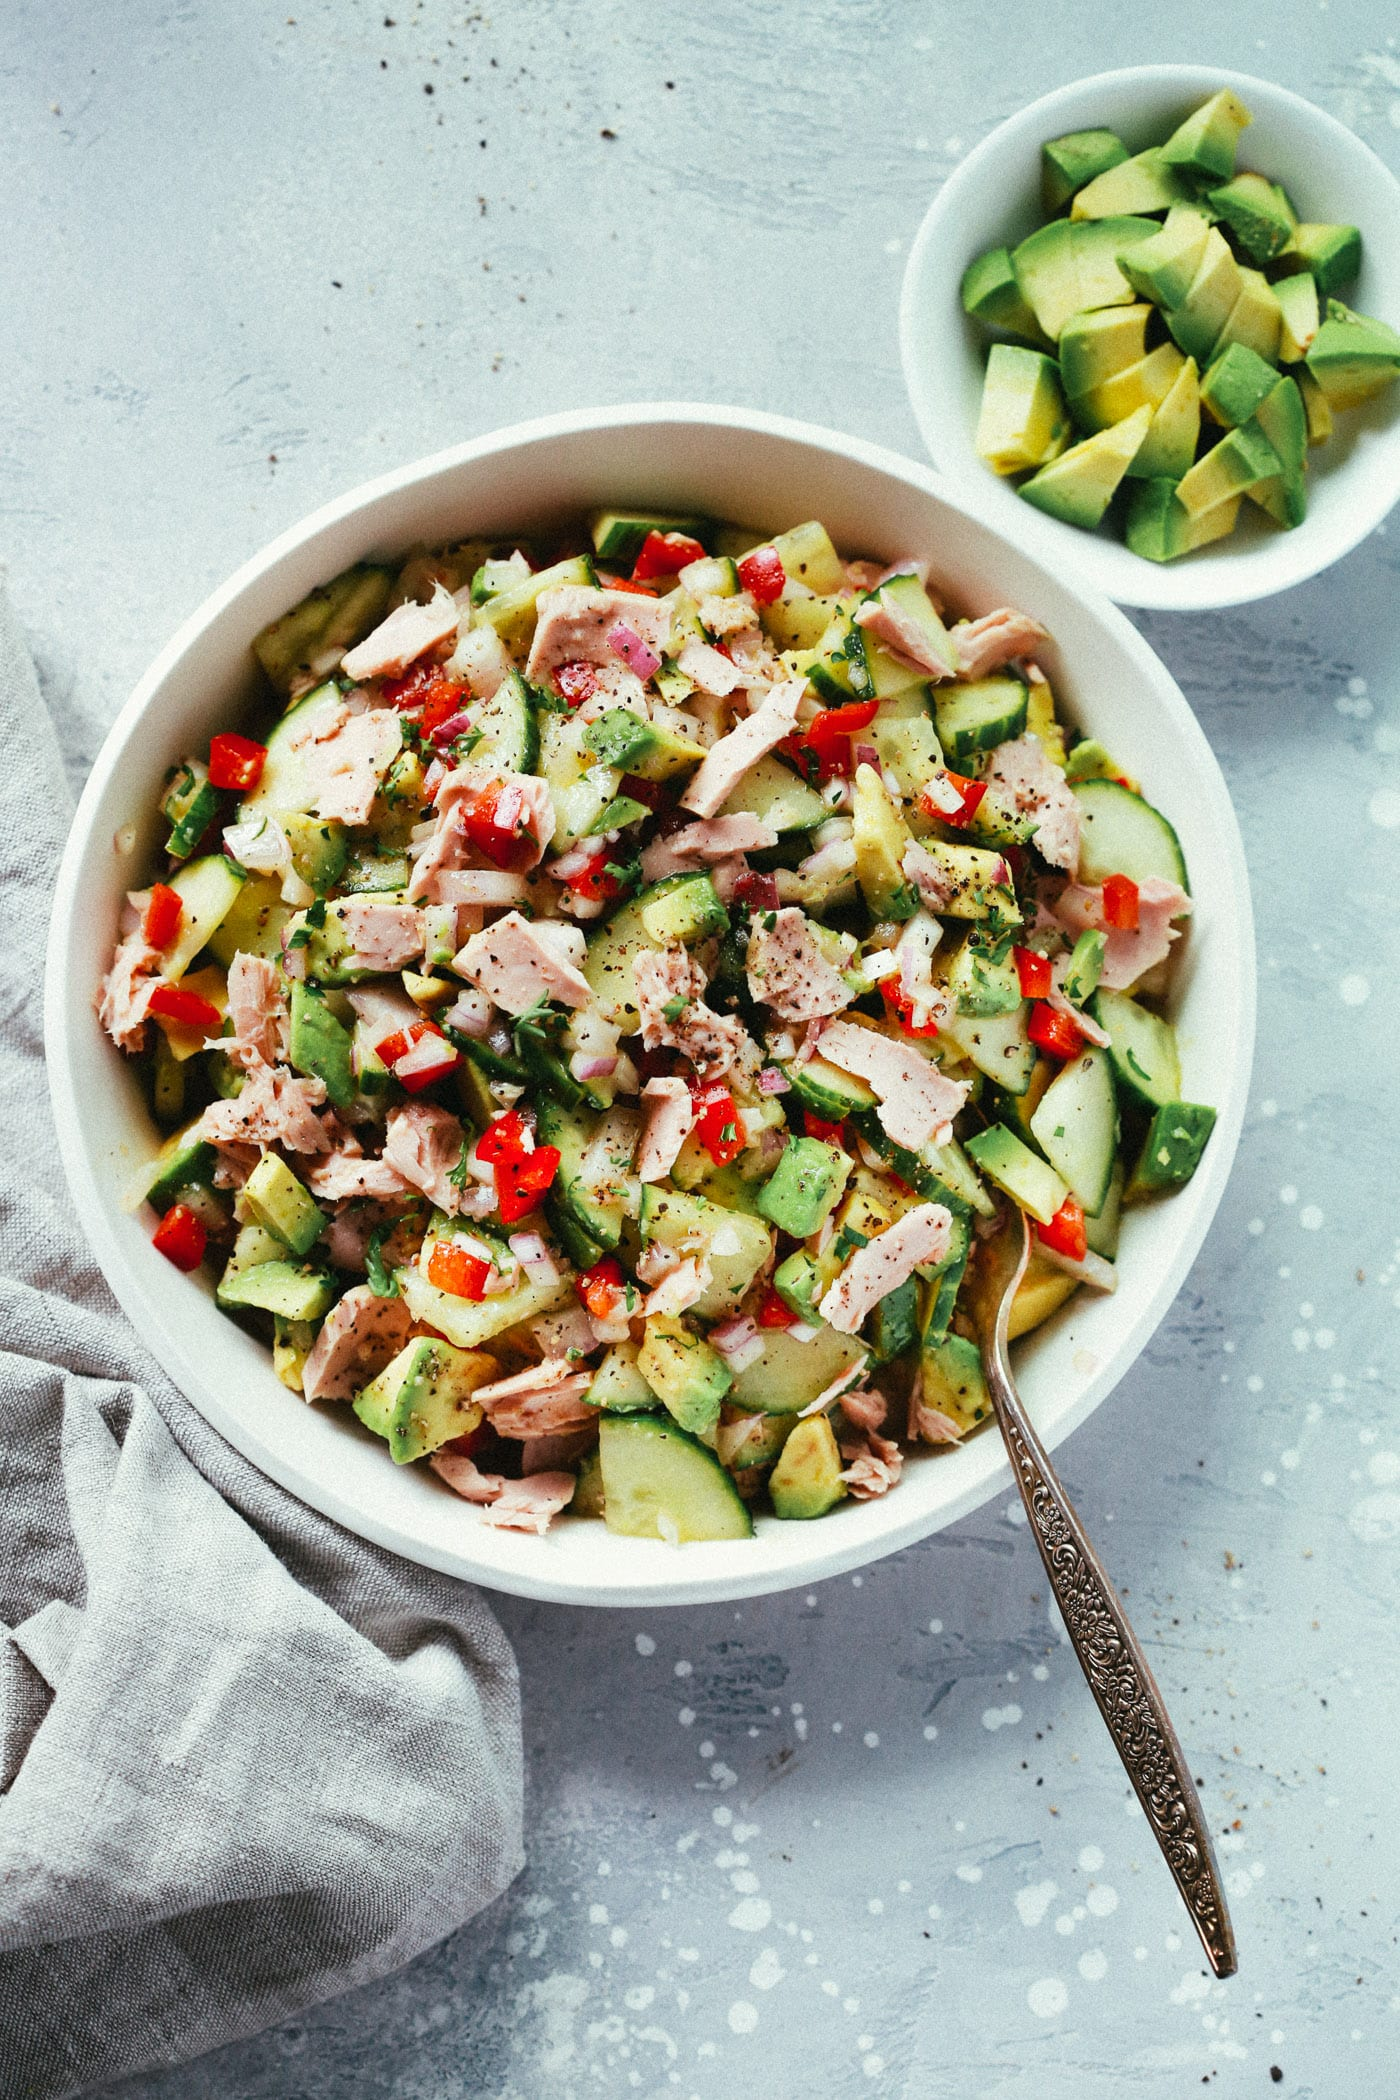 100 Filling Keto Salad Recipes That Are Ideal For Lunch